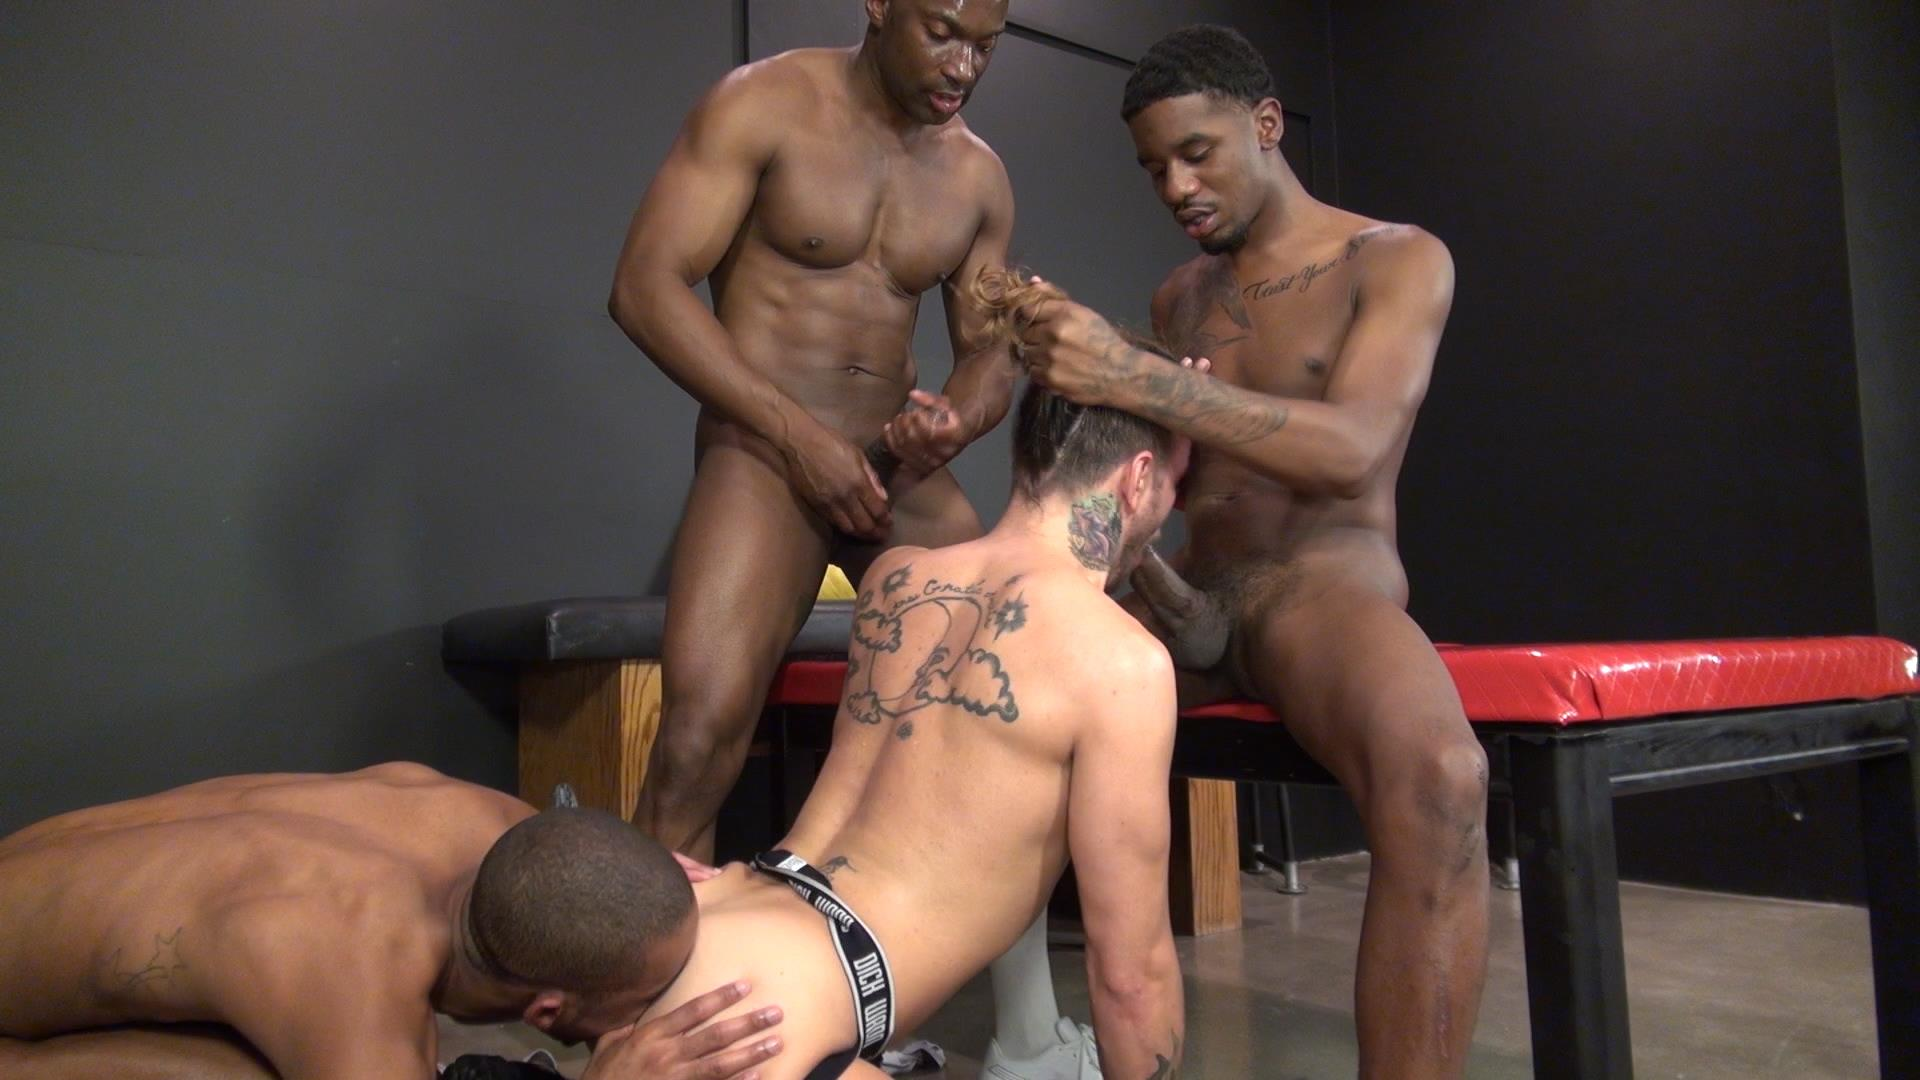 Raw and Rough Champ Robinson Lukas Cipriani Knockout Tigger Redd BBBH Amateur Gay Porn 19 White Boy Gets A Breeding By Three Big Black Dicks